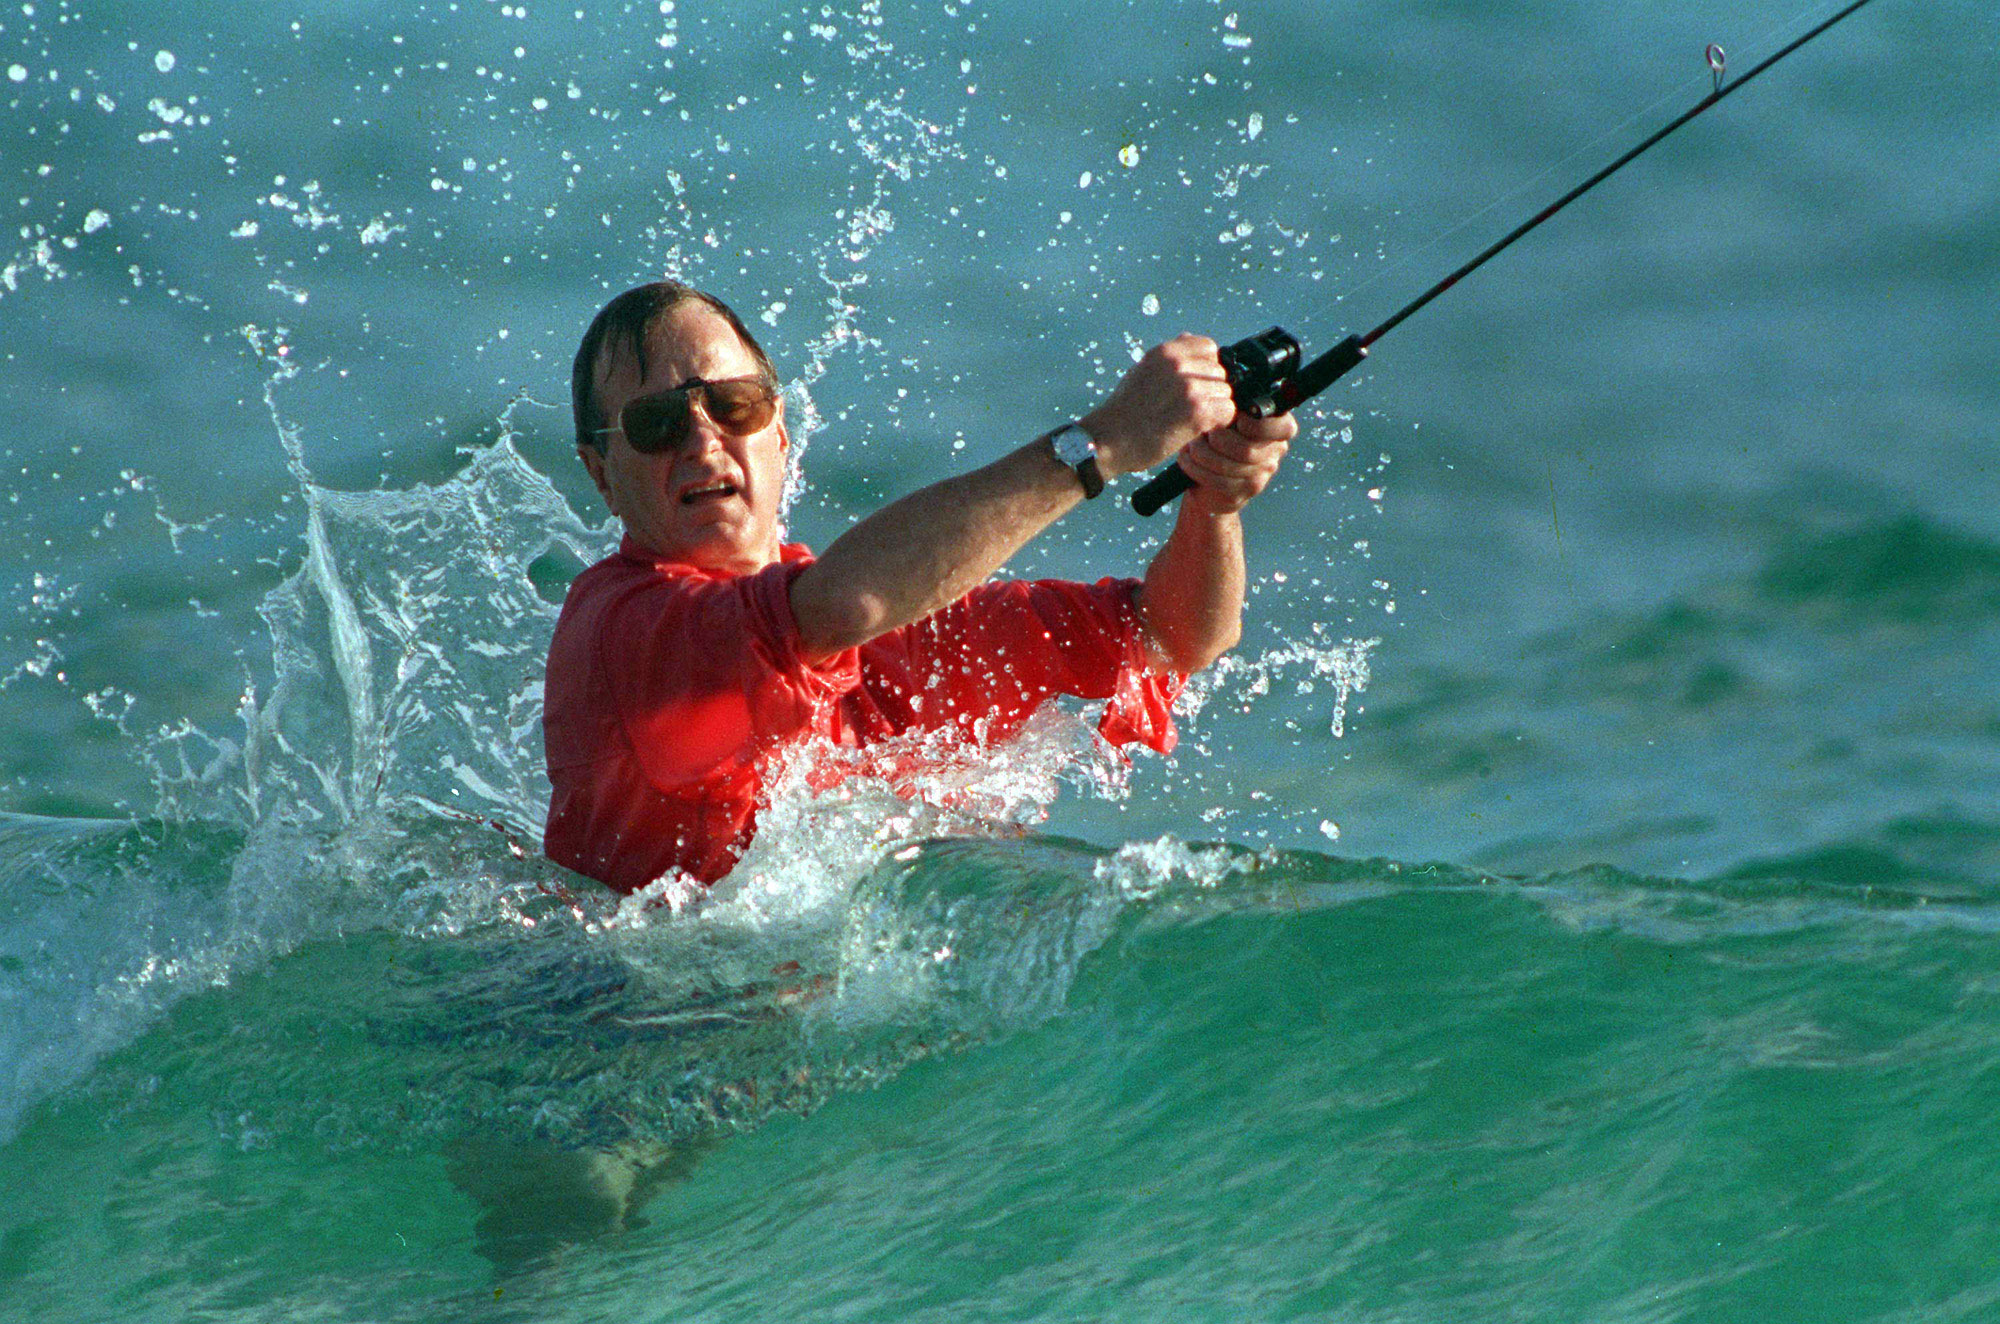 In this Nov. 12, 1988, photo, waves splash on then-President-elect George H.W. Bush as he casts a line while fishing in Gulf Stream, Fla. (AP Photo/Kathy Willens, File)